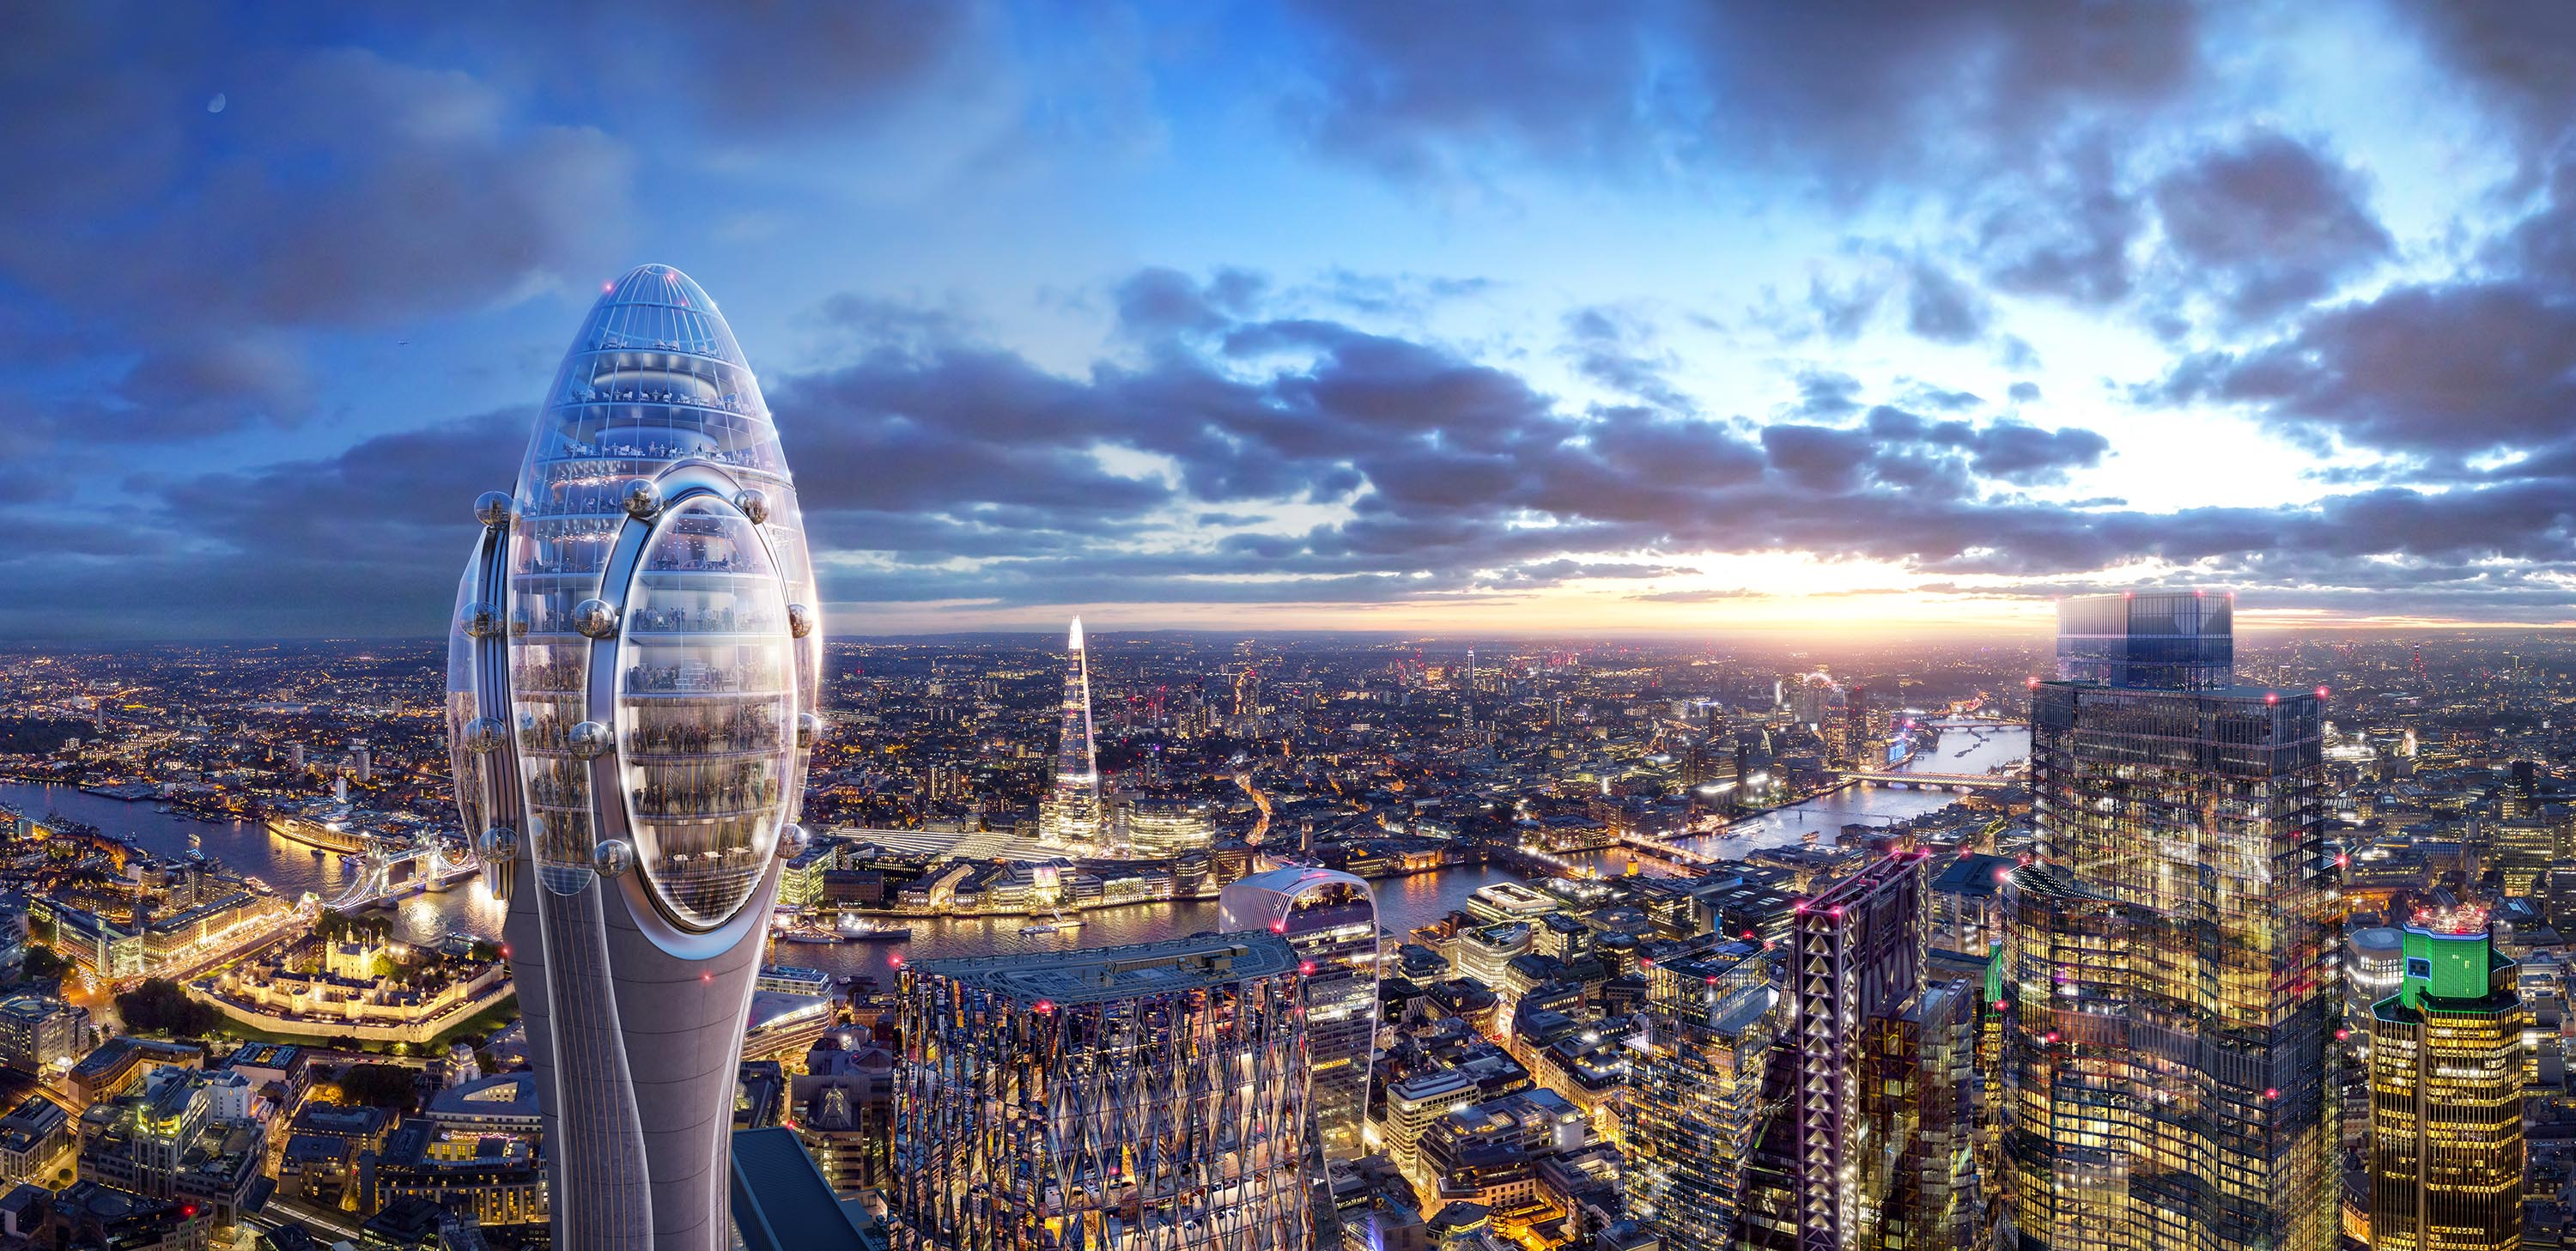 London to get 'world's first' infinity pool with 360-degree